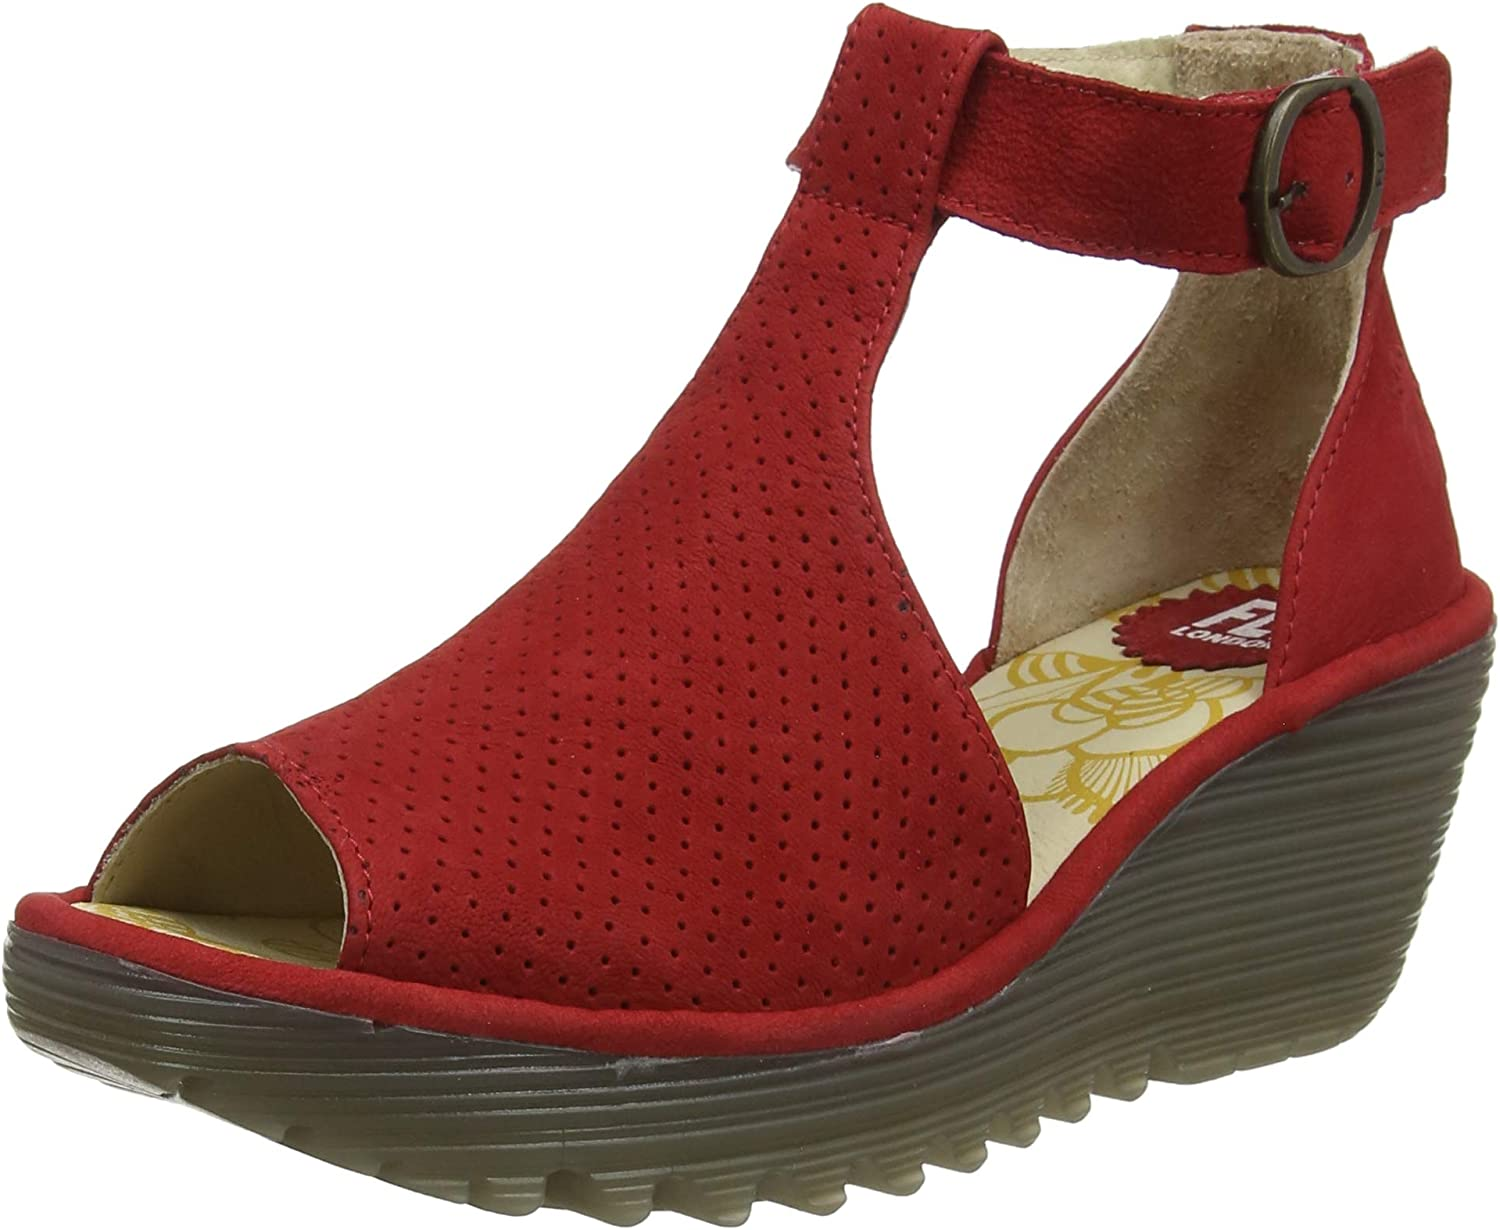 Fly London Womens Yall Cupido Cut Out Peep Toe Perforated Wedge Heels